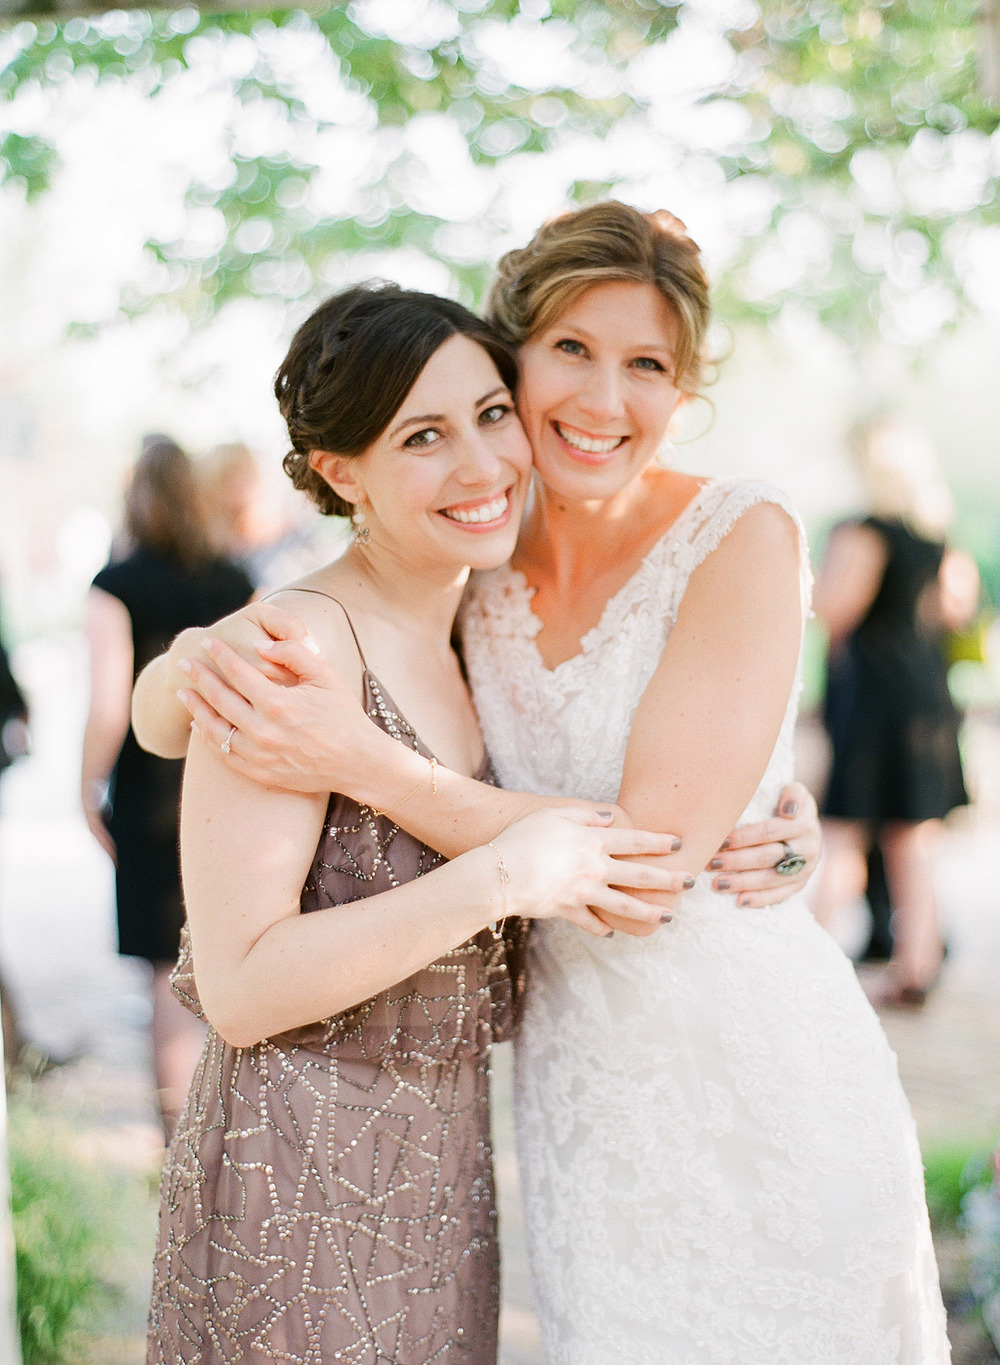 bride hugs bridesmaid at this  springtime wedding at Northwind Perennial Garden - a beautiful wisconsin wedding venue - while Destination wedding photographer Lexia Frank Photographs this wedding on film